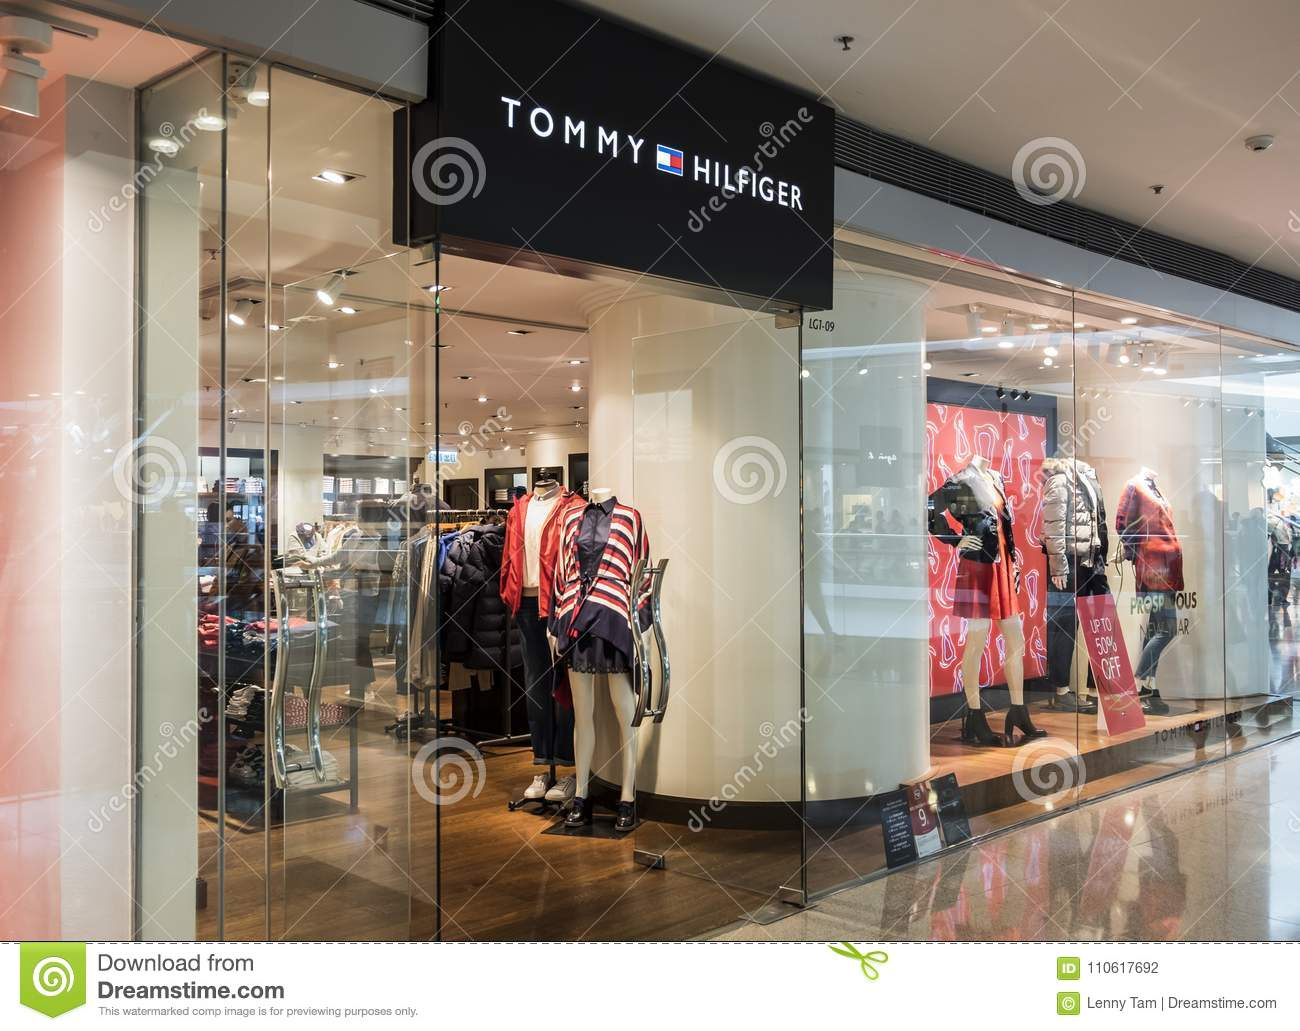 Tommy Hilfiger store in Hong Kong. Tommy Hilfiger corporation is an American  clothing company. bdab8c70a41